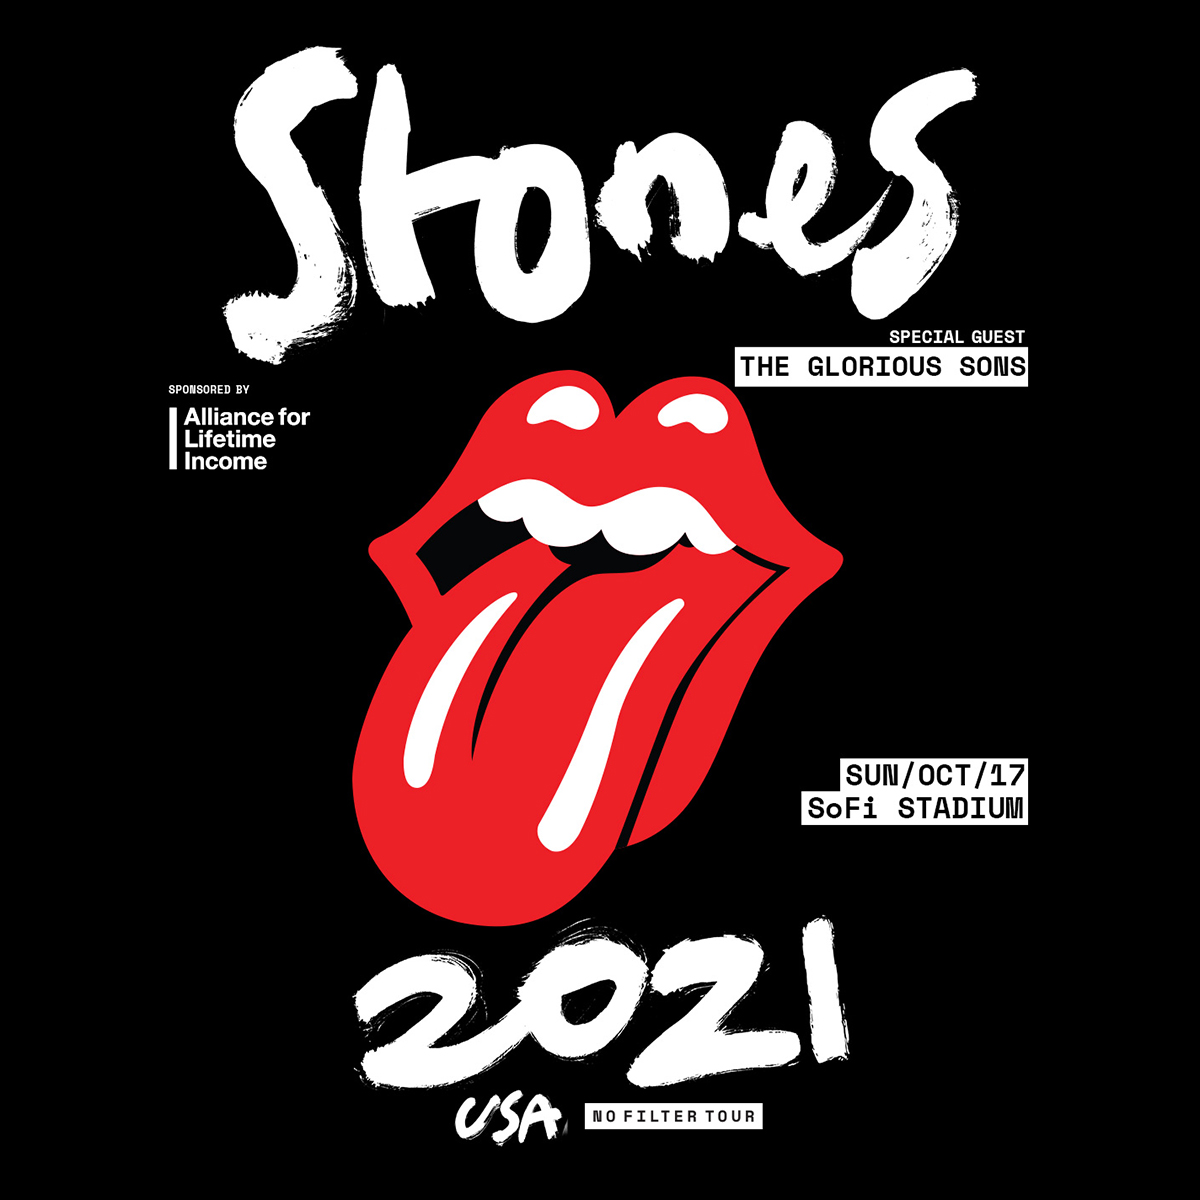 The Glorious Sons Set To Open For The Rolling Stones In Los Angeles, CA This Sunday 10/17